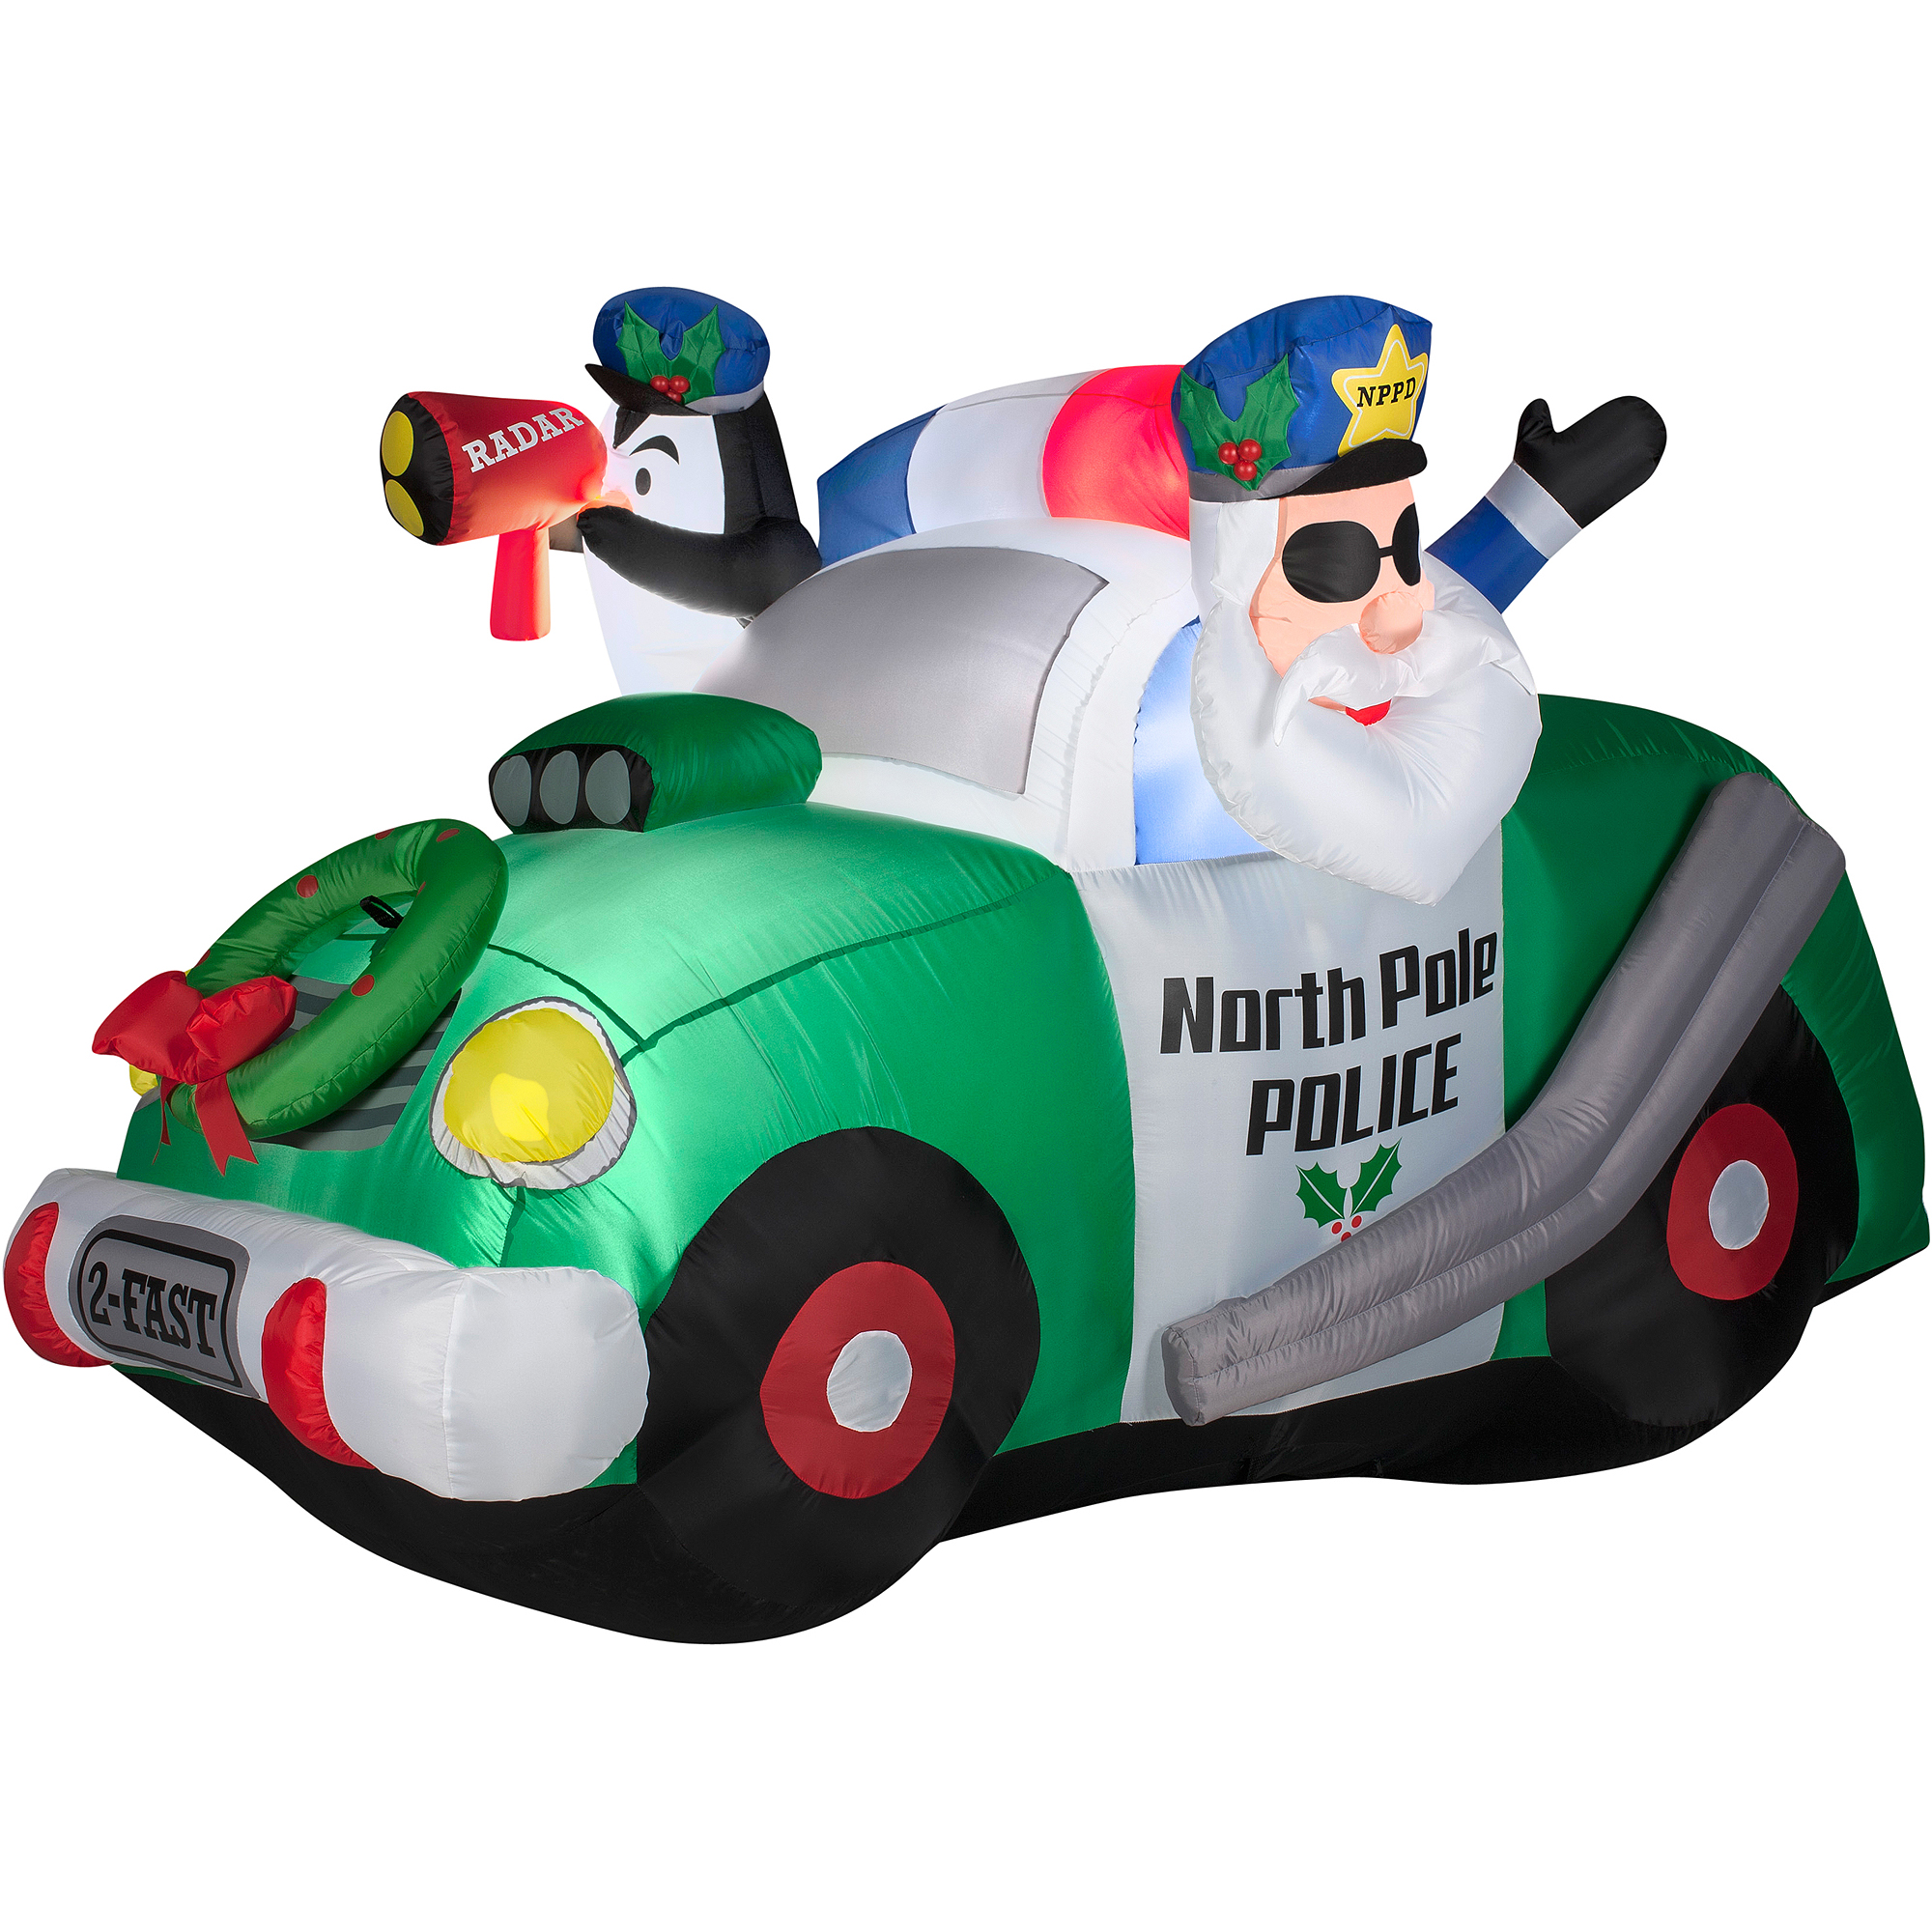 4\' North Pole Police Airblown Inflatable Christmas Prop - Walmart.com